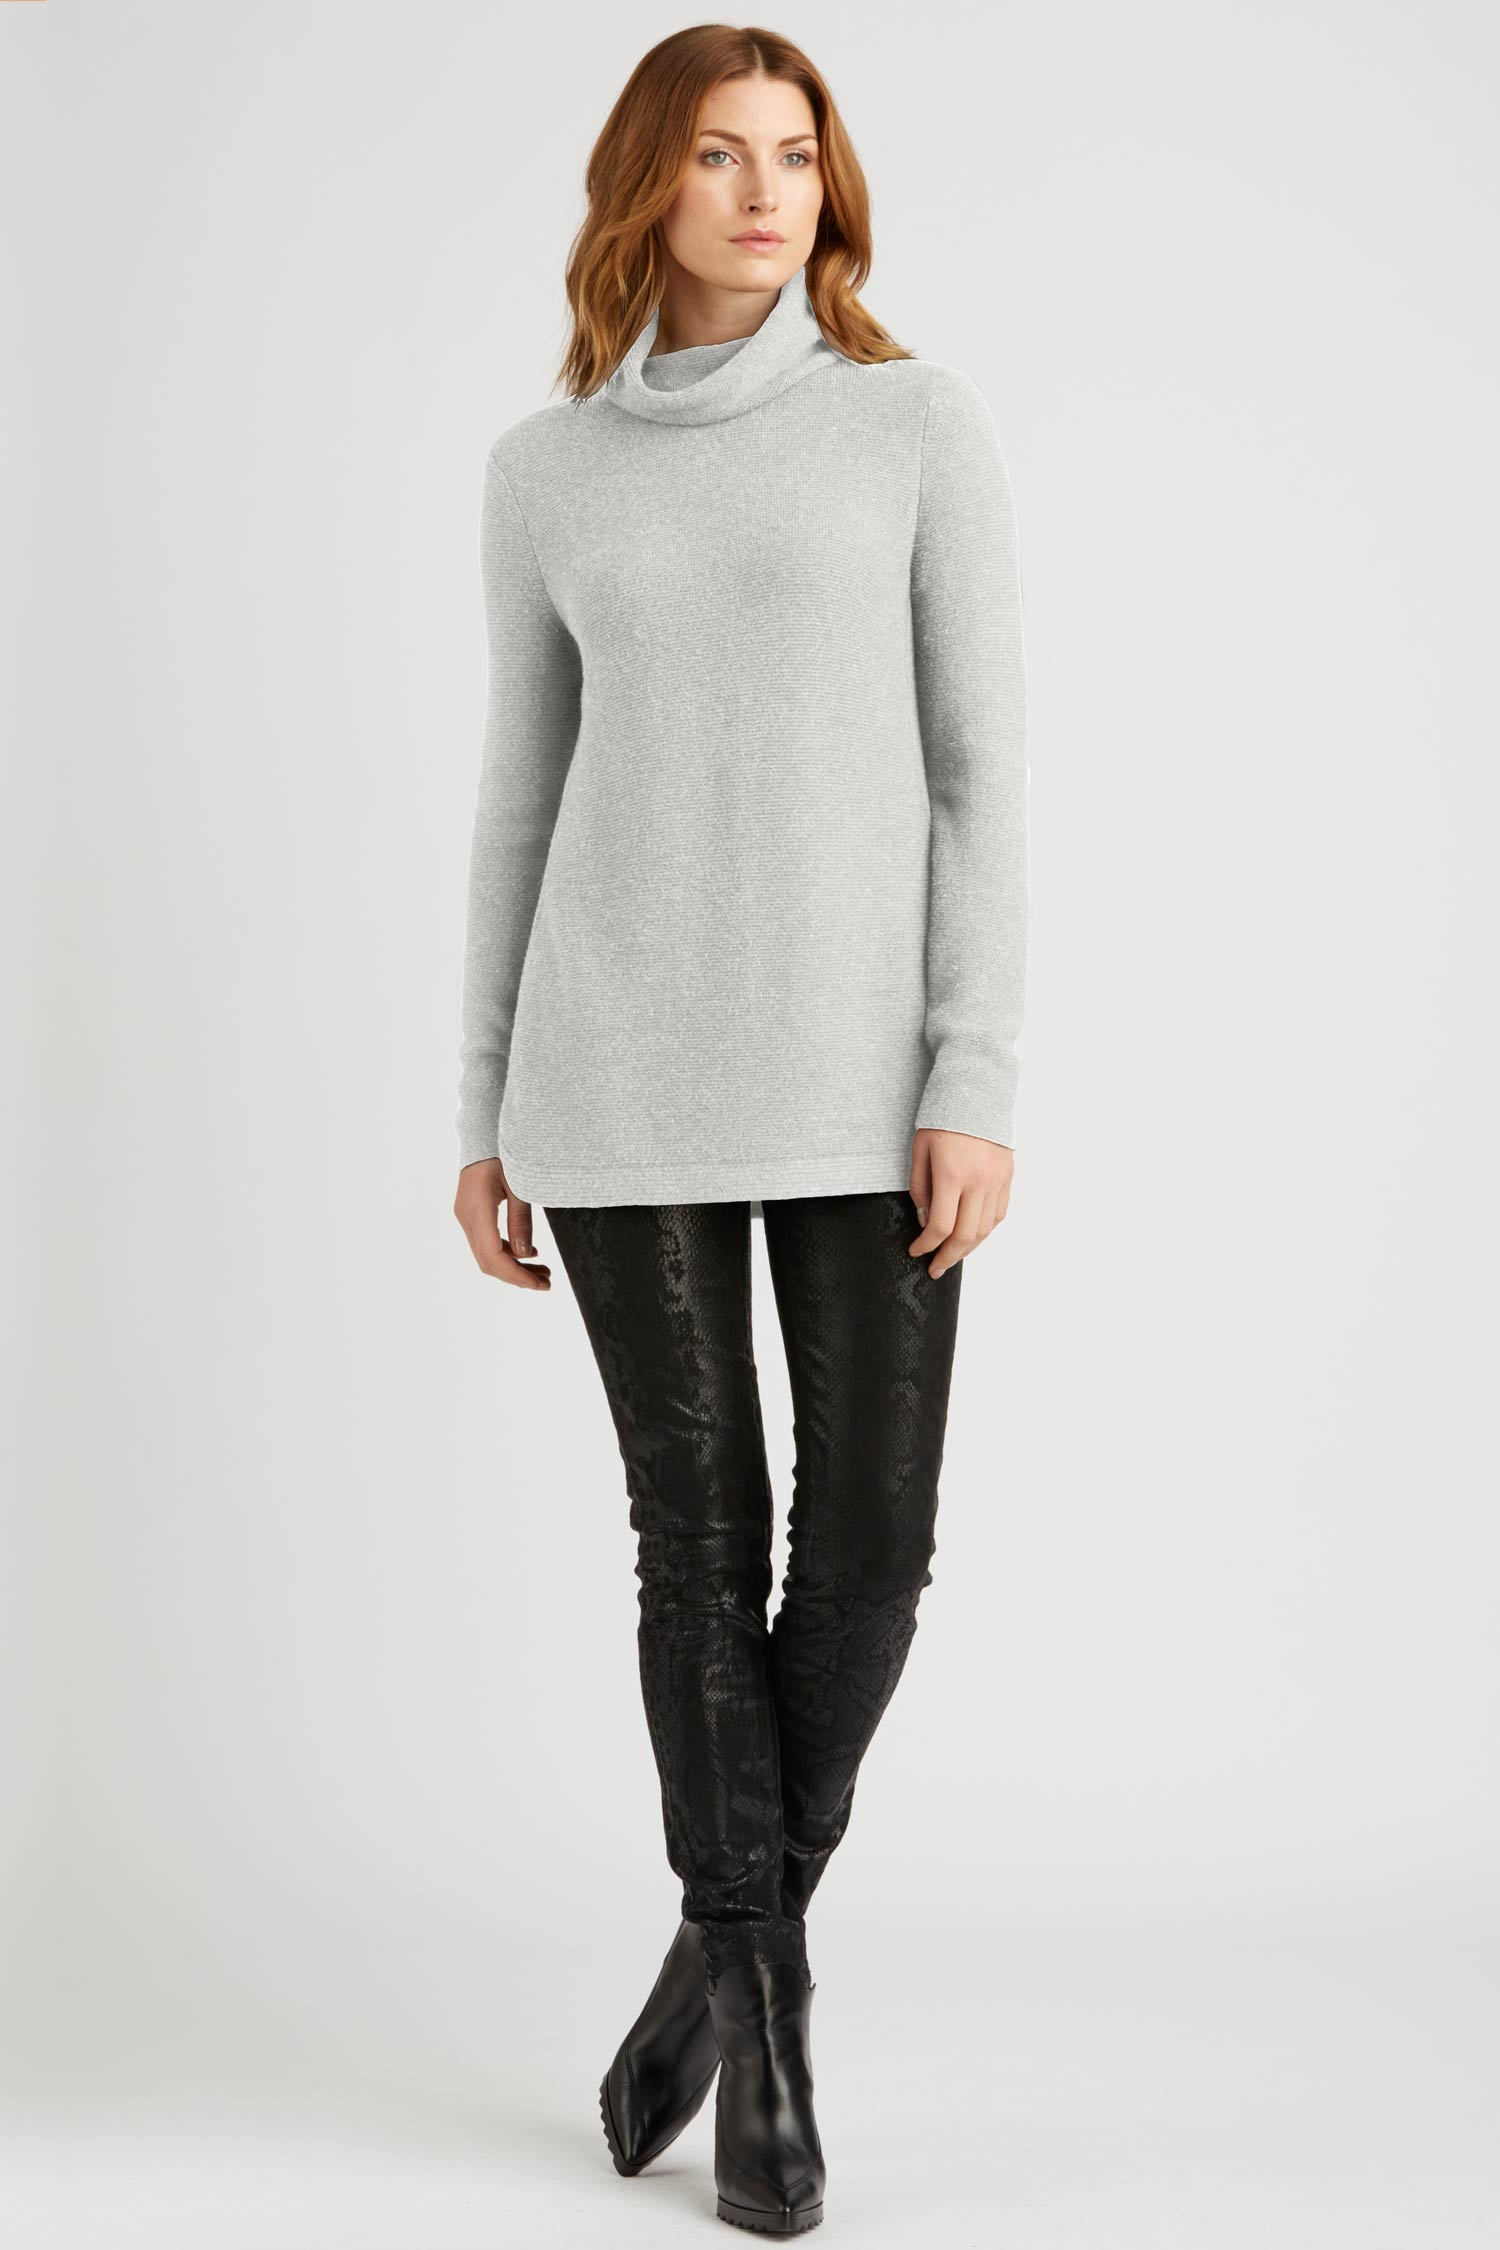 Womens Funnel Neck Sweater | Organic Cotton Clothing | Silver